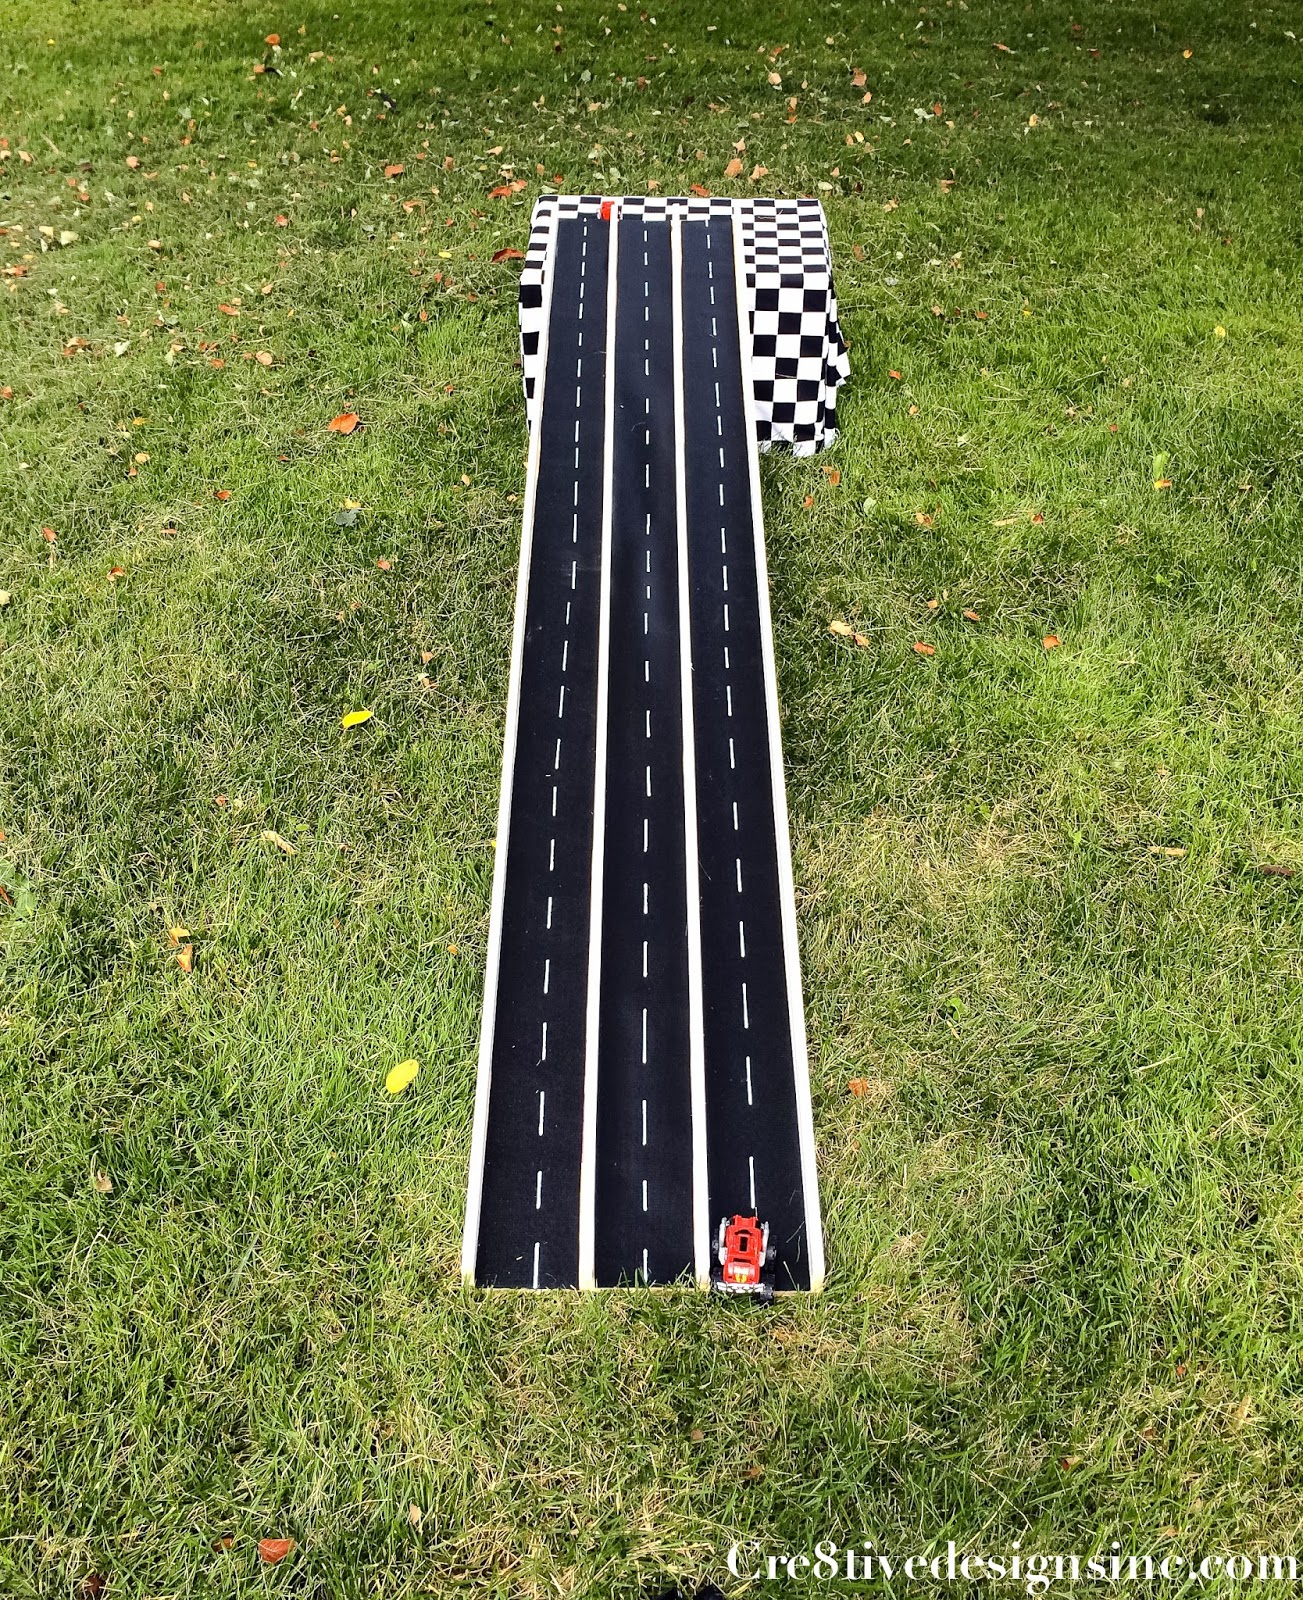 Backyard Projects for Kids: DIY Race Car Track - DO IT ...